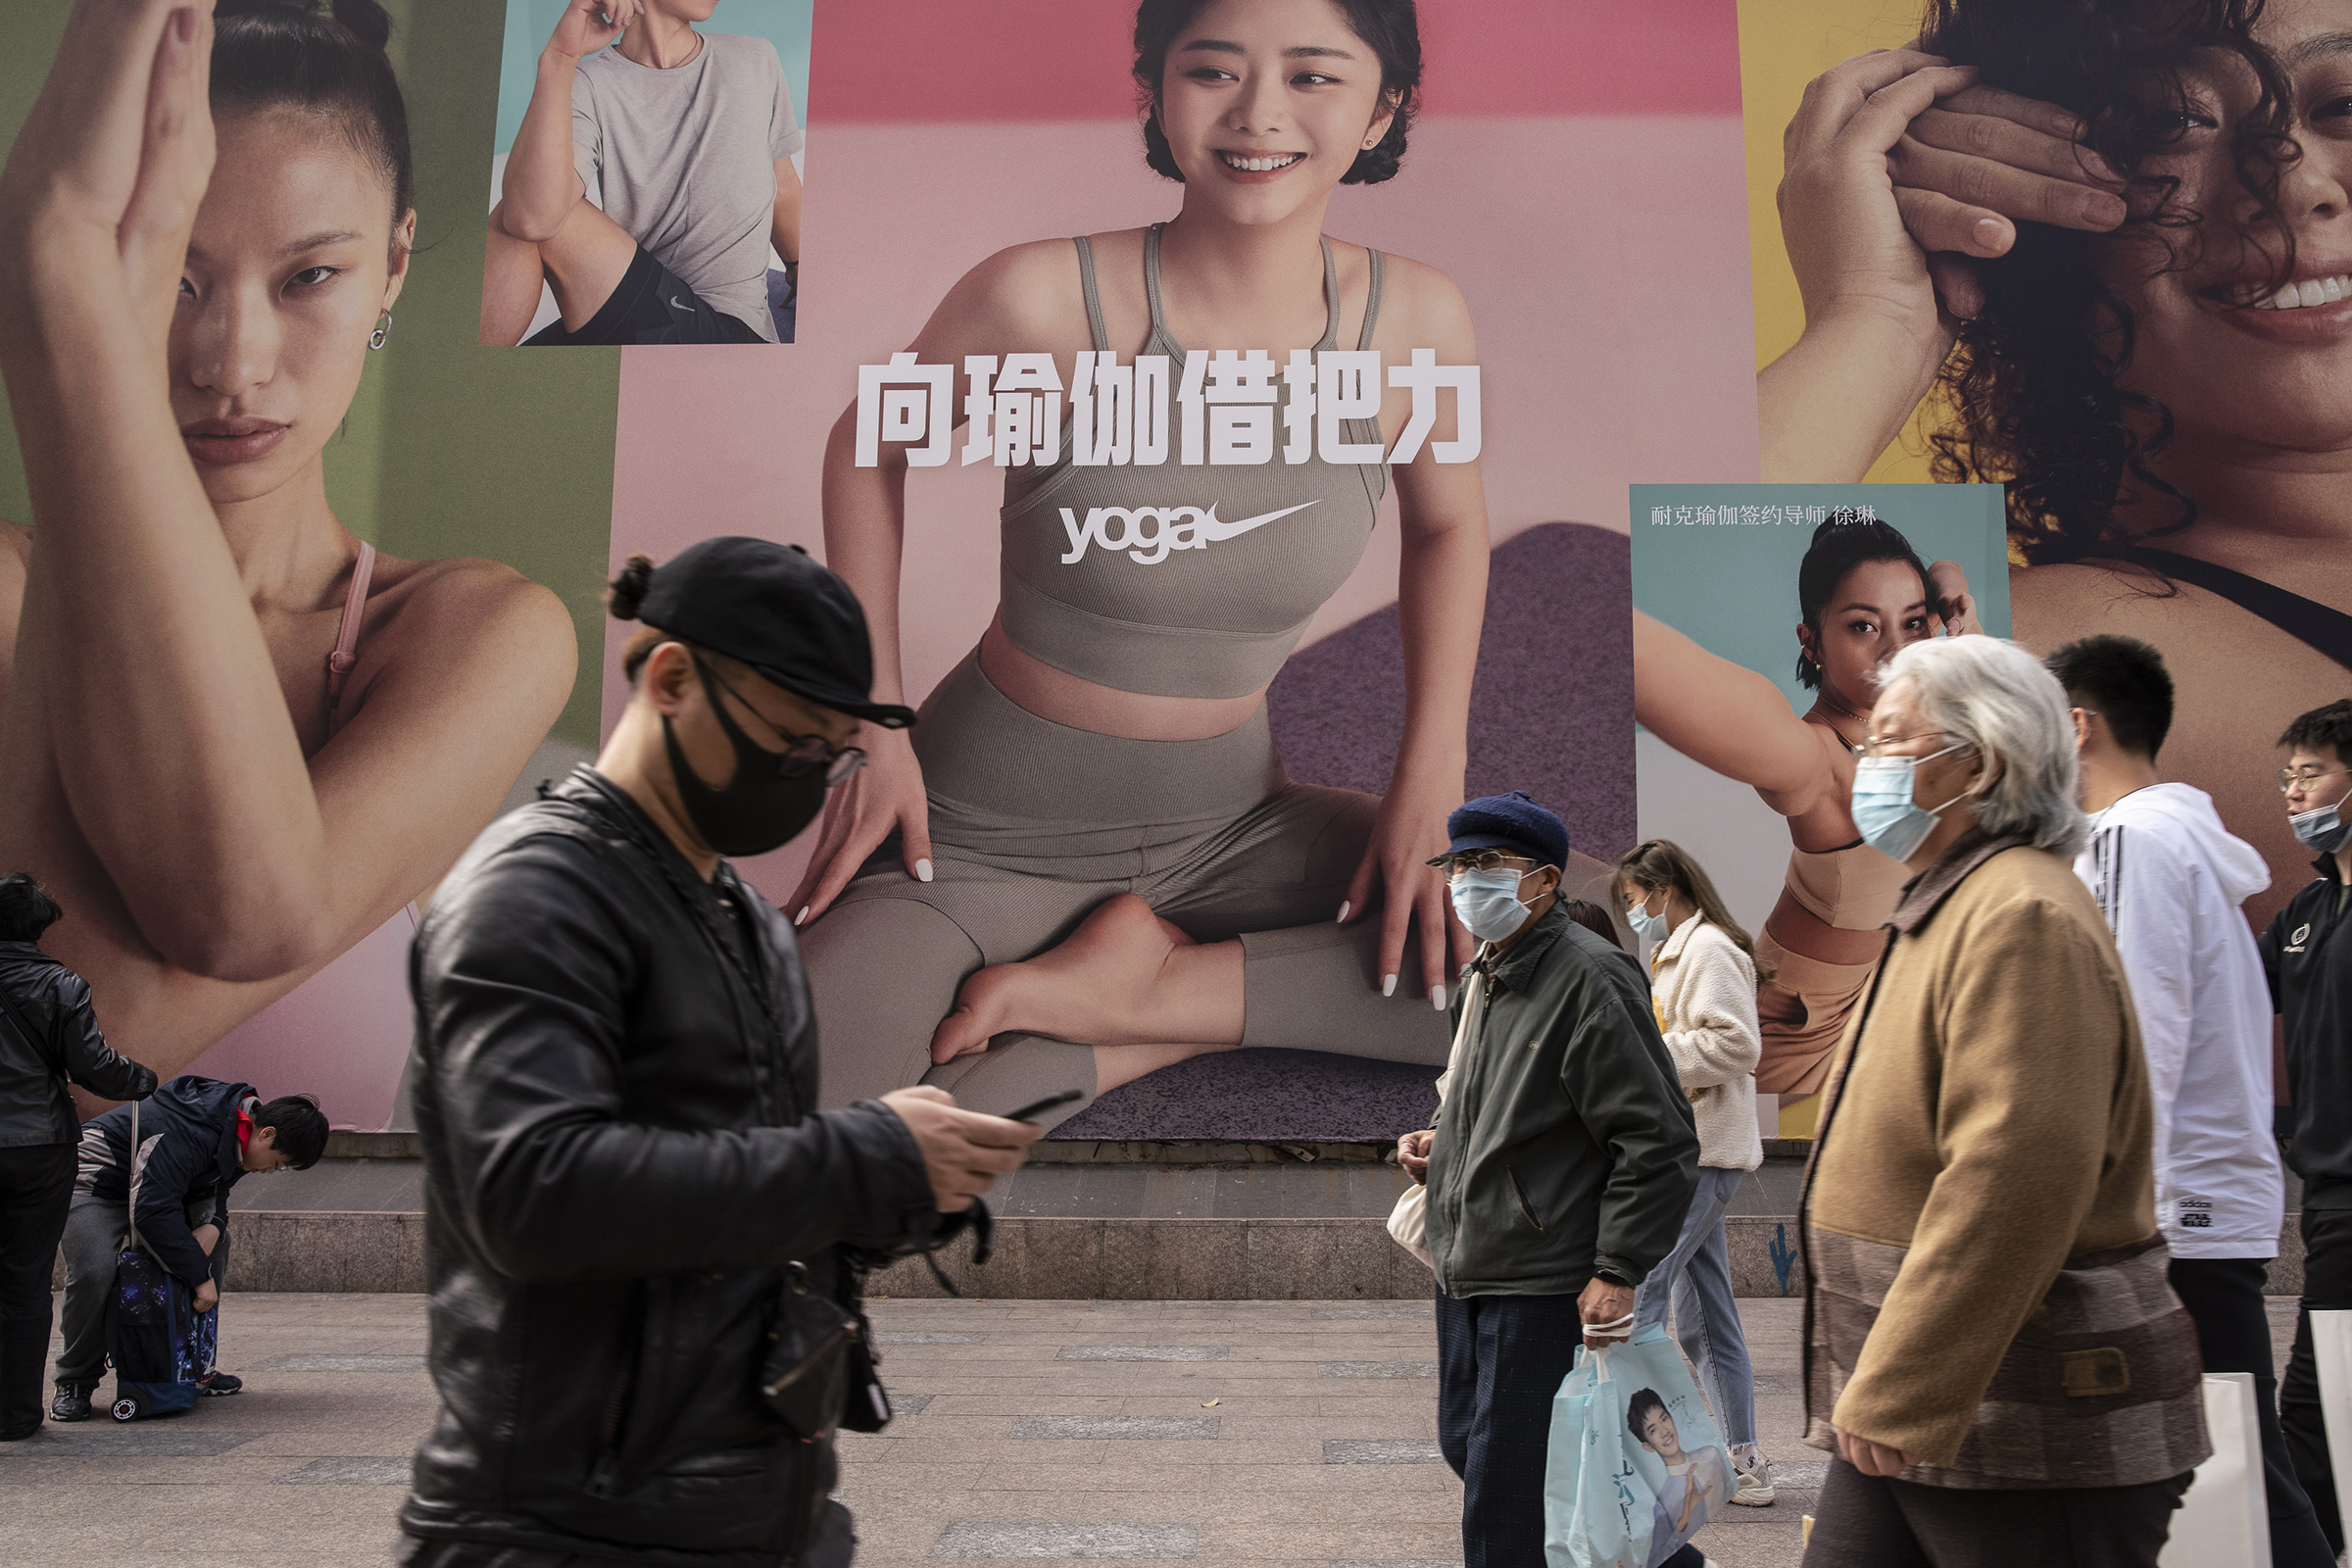 Pedestrians walk past a Nike advertisement in Shanghai on March 26. China this week has pushed a campaign to boycott Western retailers after the U.S., U.K., Canada and the E.U. imposed sanctions over human-rights abuses against ethnic minority Uyghurs in Xinjiang.